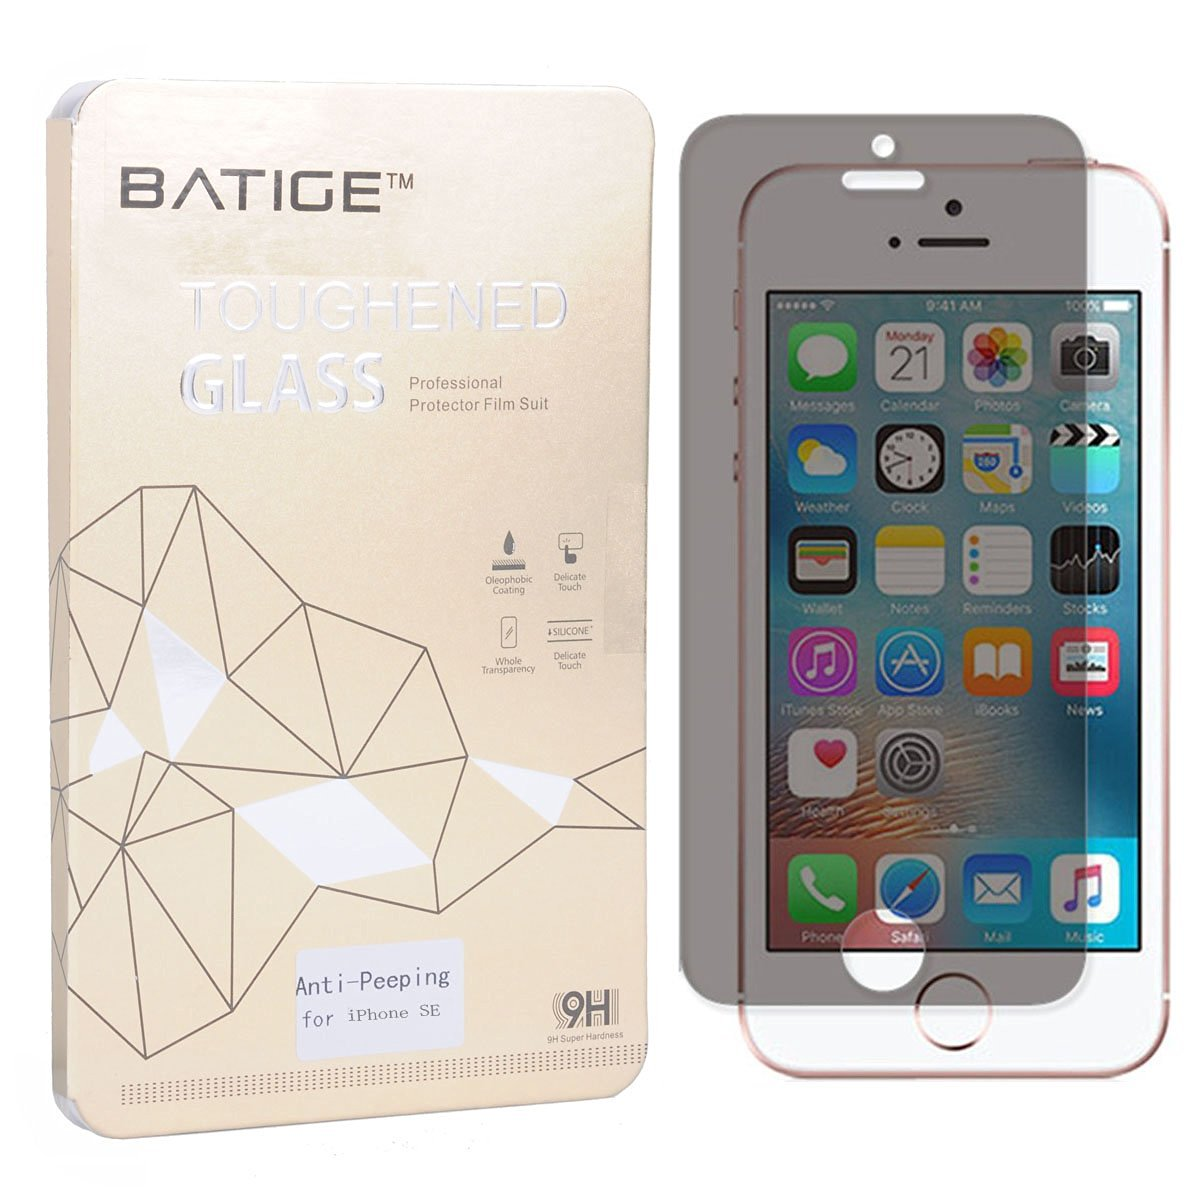 BATIGE Privacy Tempered Glass Screen Protector for iPhone SE 5 5C 5S Anti-spy Anti-peeping Glass Screen Guard